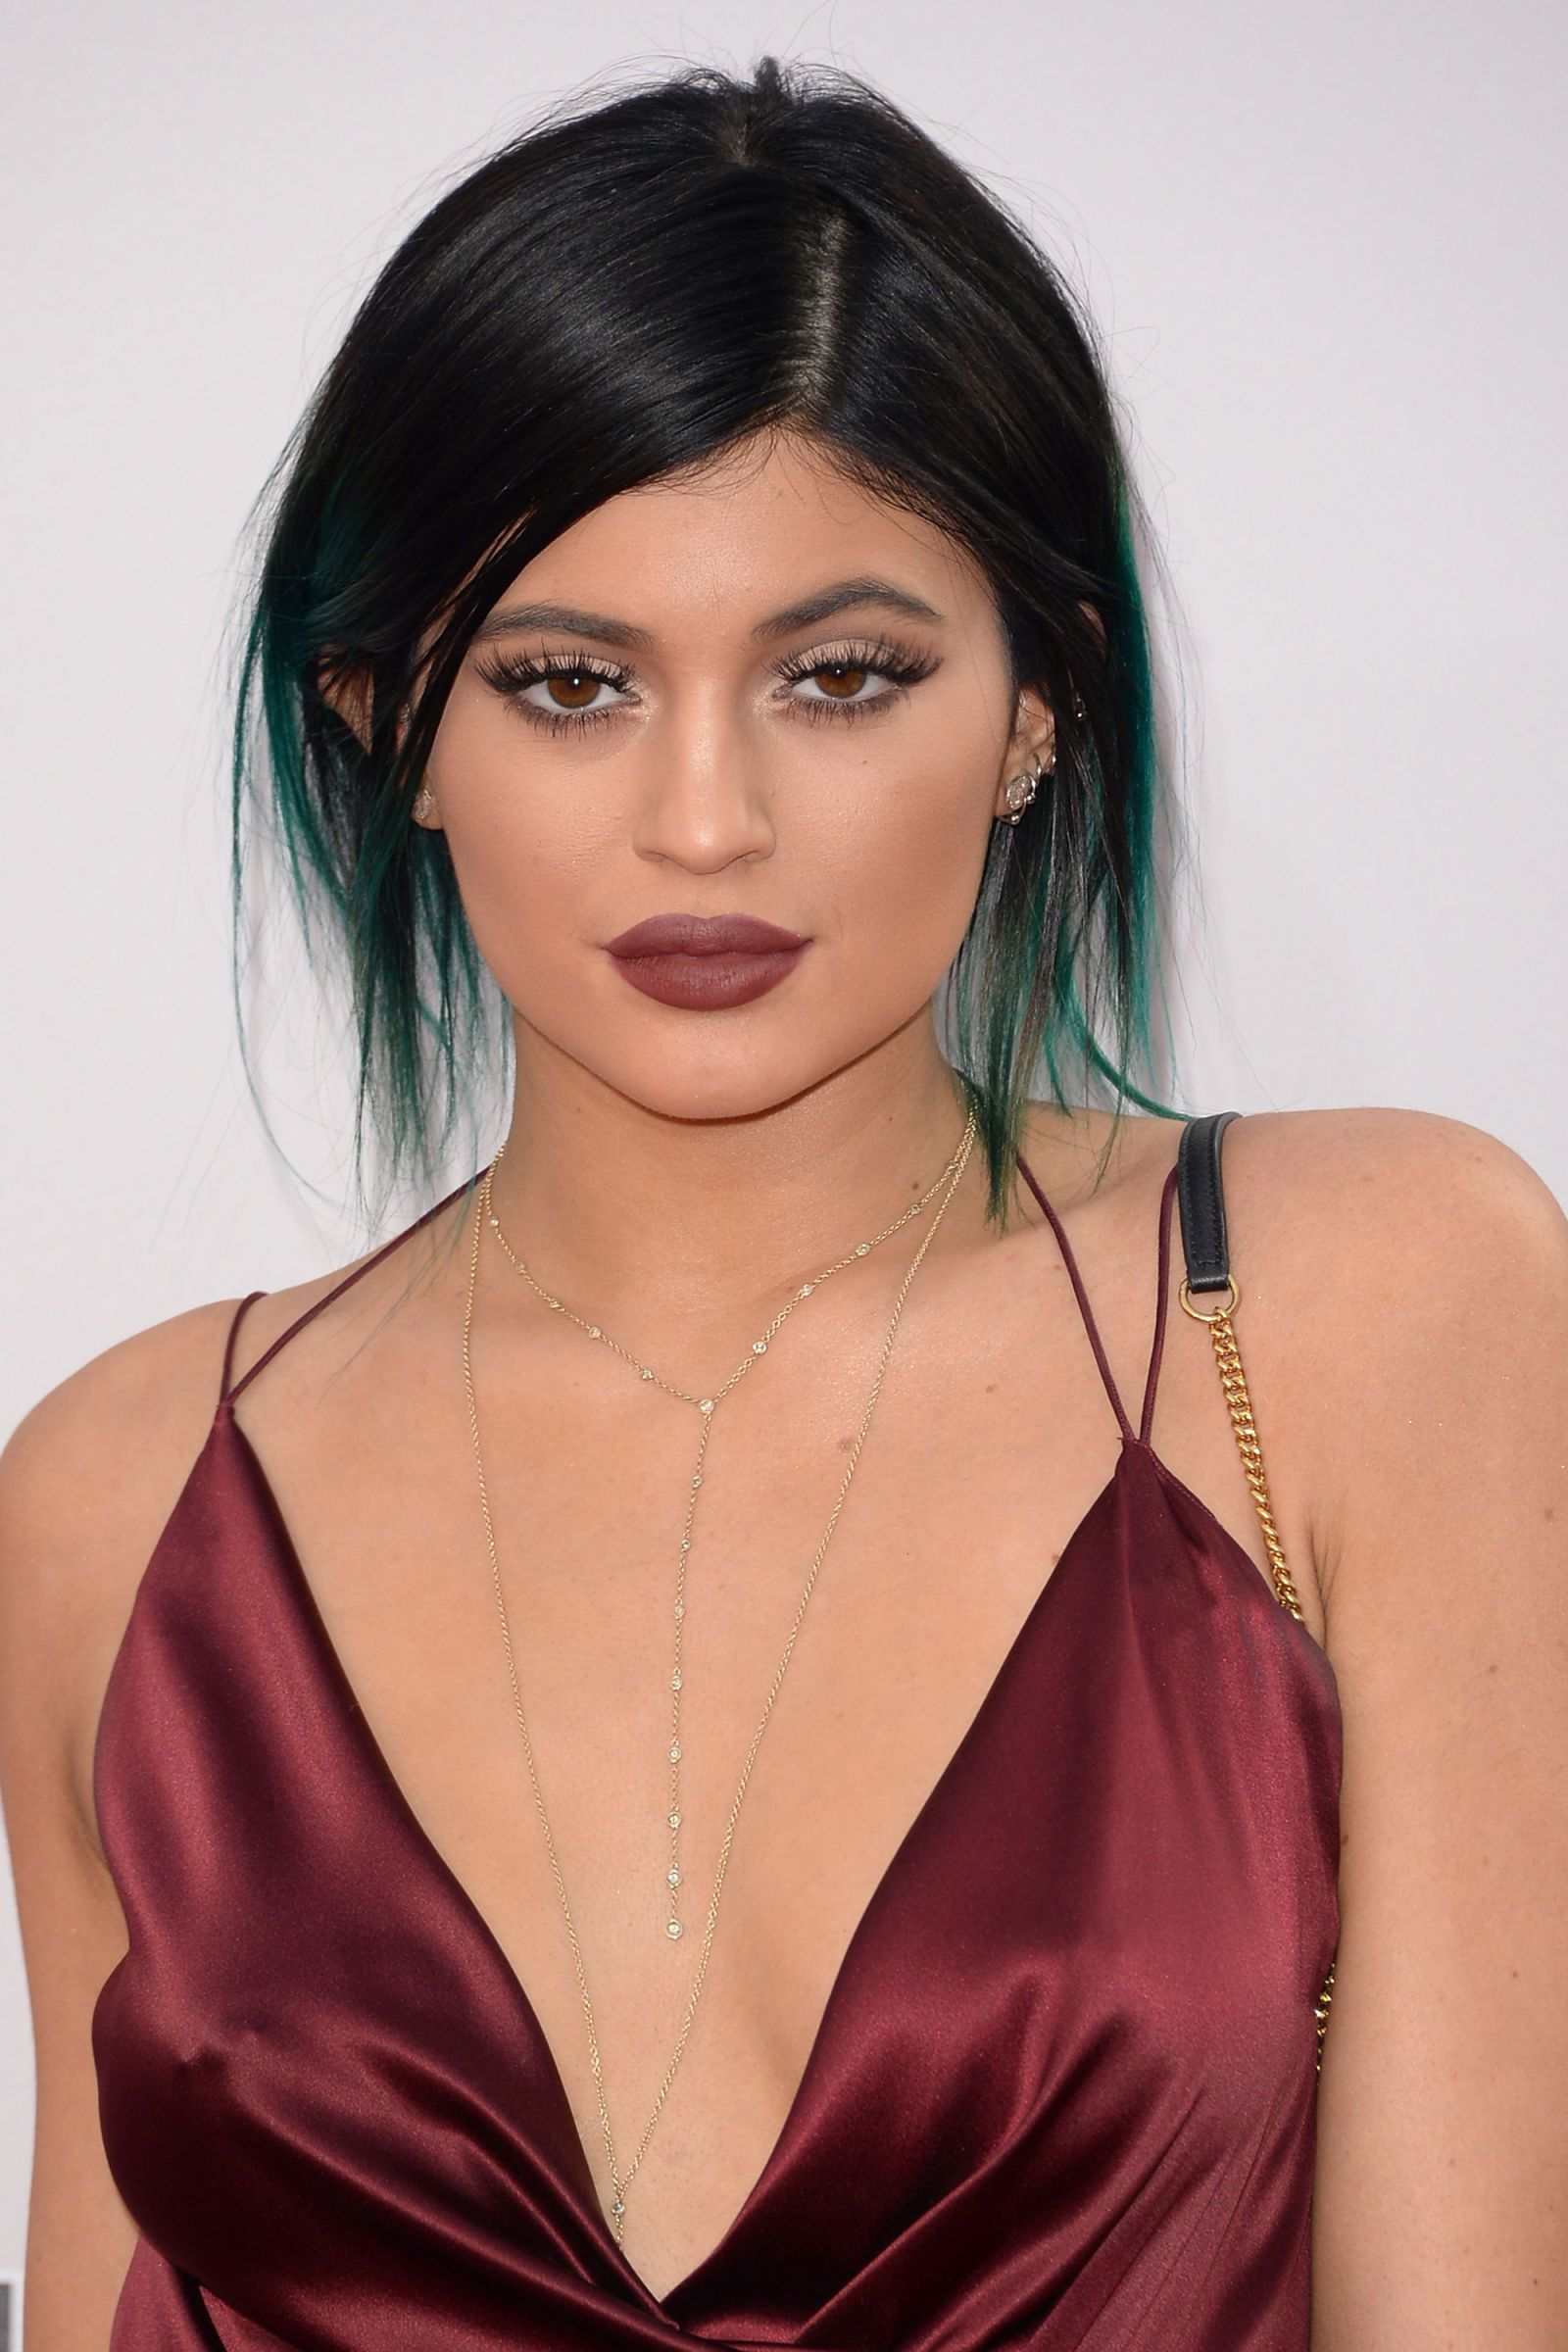 Kylie Jenner attends the 2014 American Music Awards on Nov. 23, 2014 in Los Angeles.